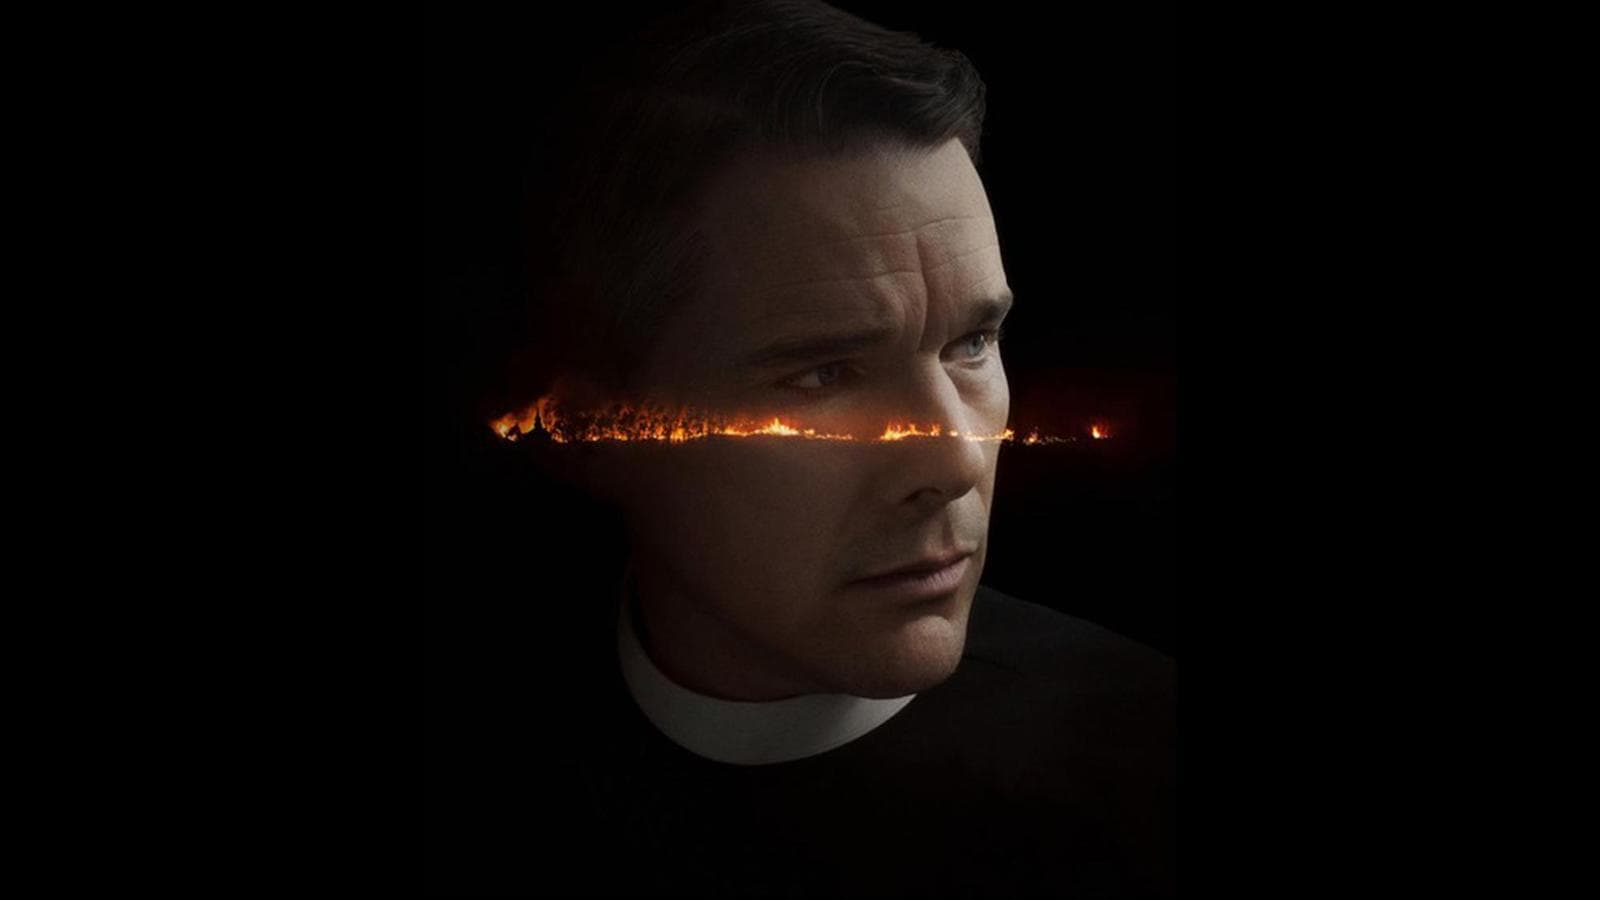 Best Independent Films - Ethan Hawke - First Reformed - Paul Schrader - StudioBinder